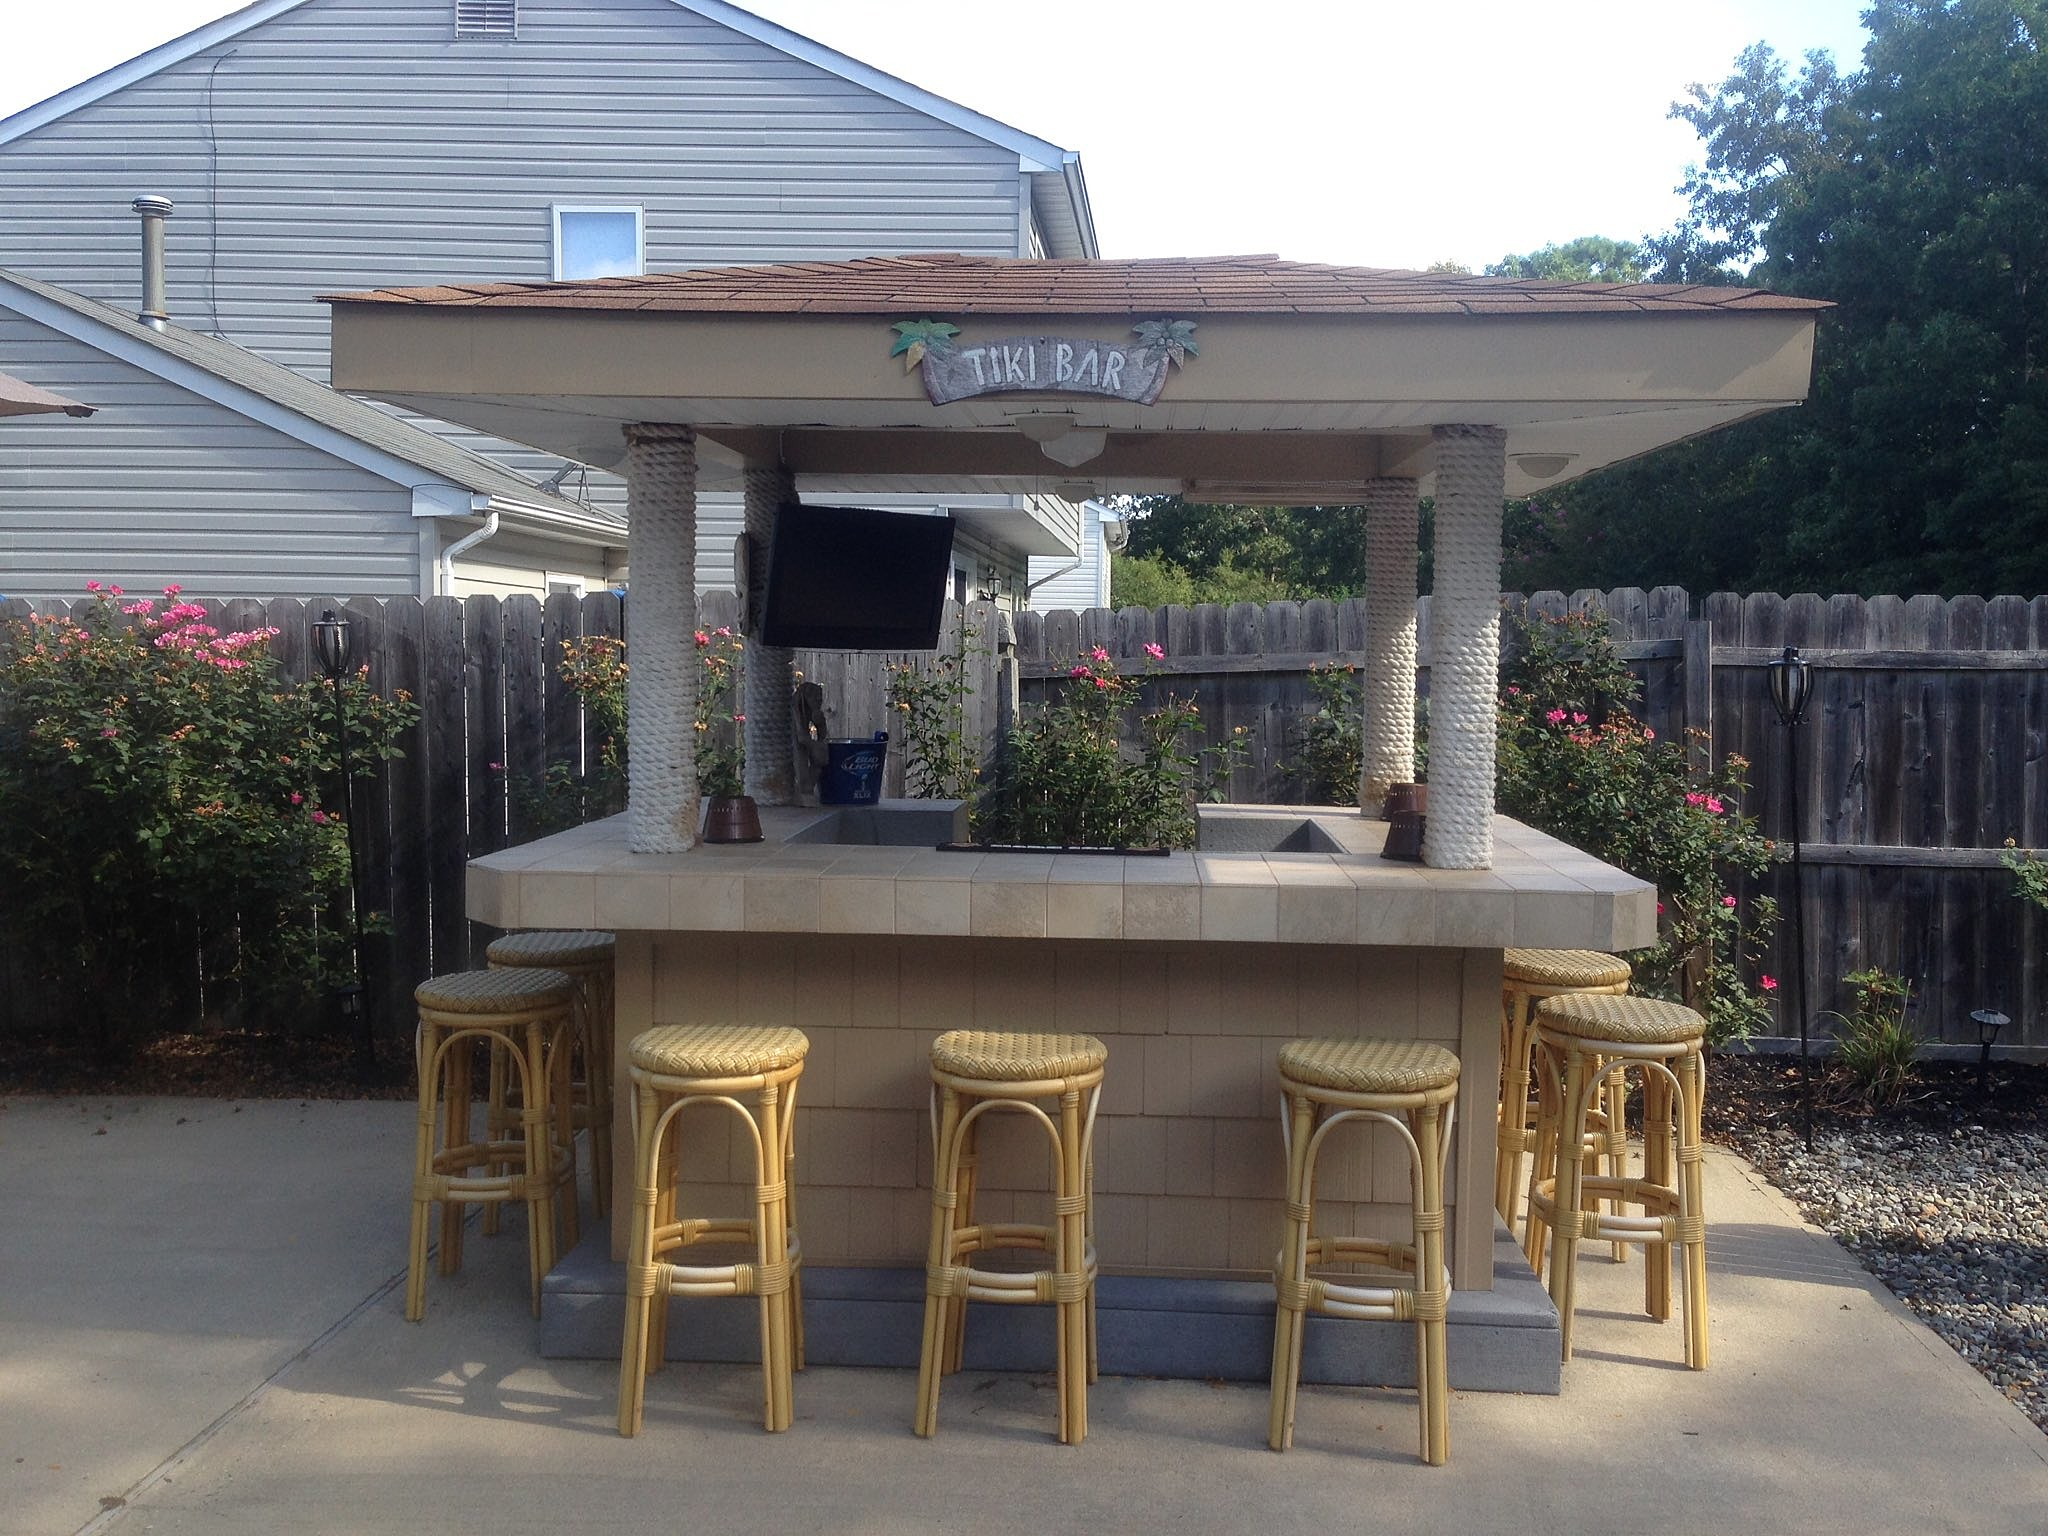 backyard bars in nj if you build it they will come